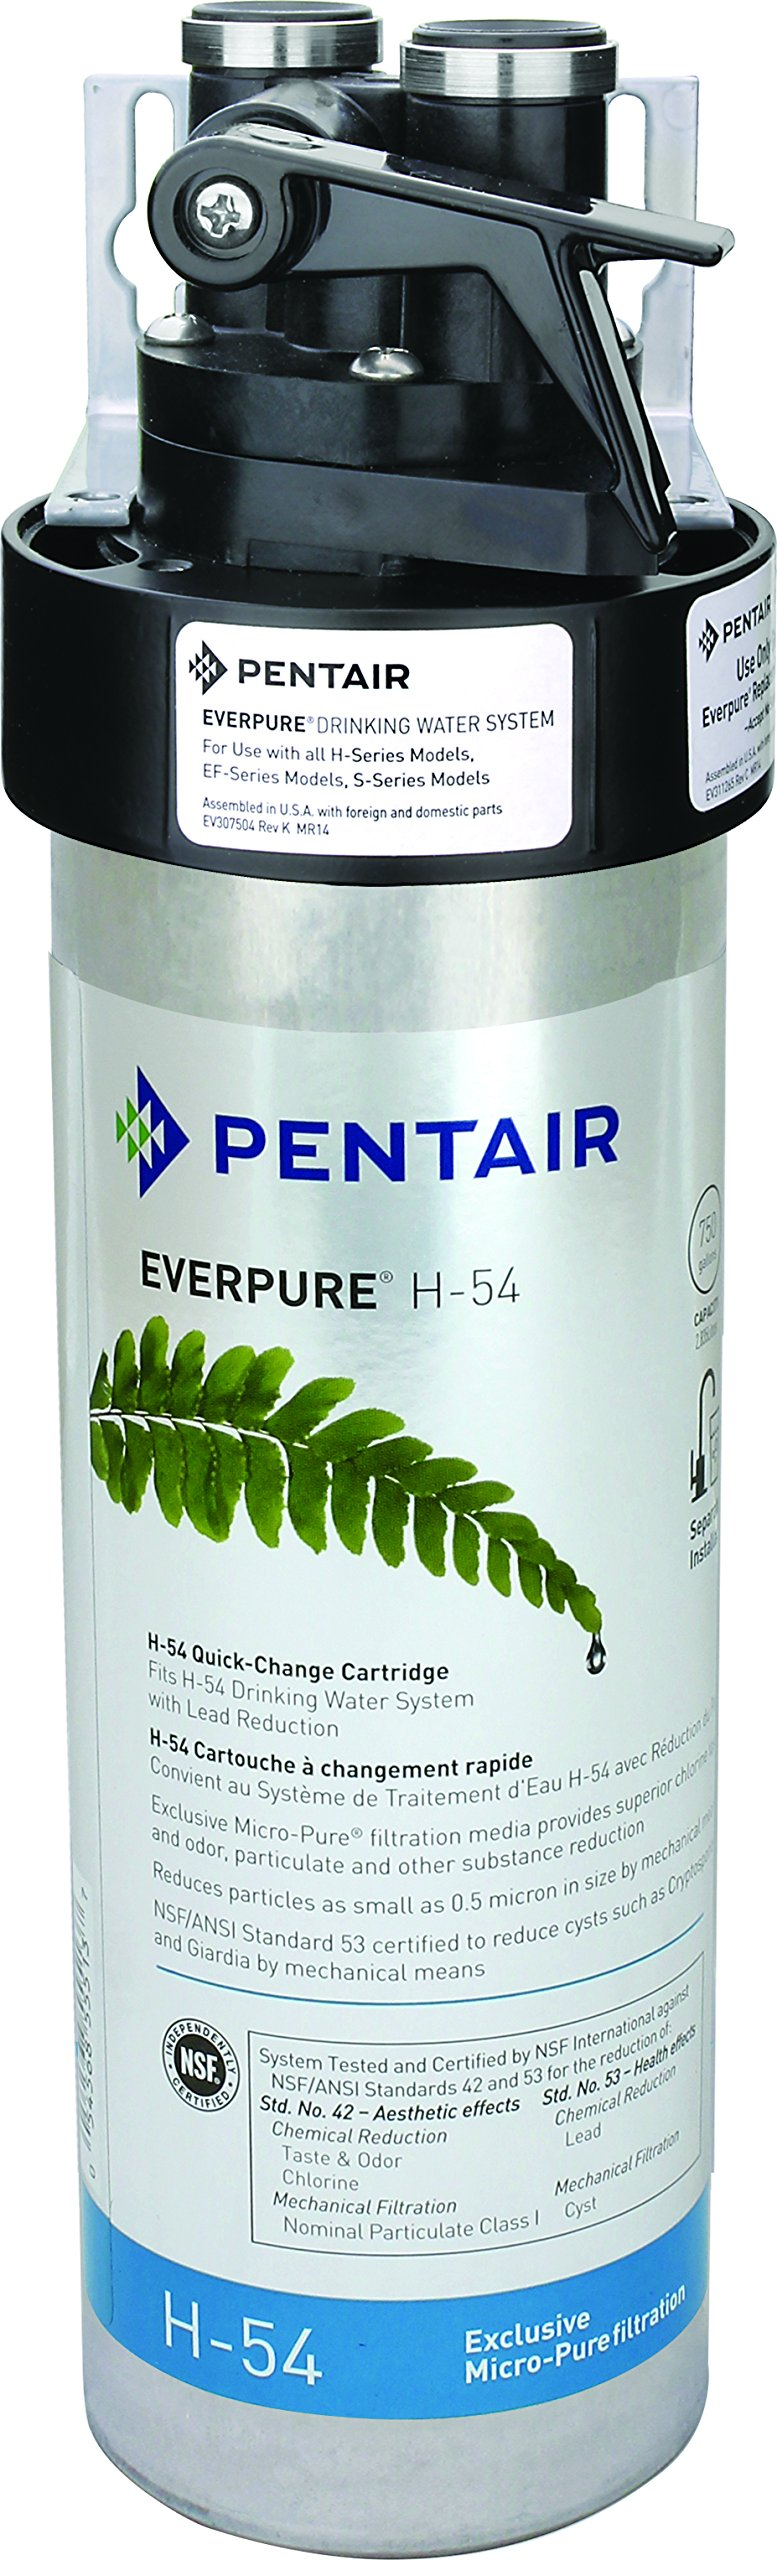 Everpure H-54 Drinking Water Filter System (EV9252-67)